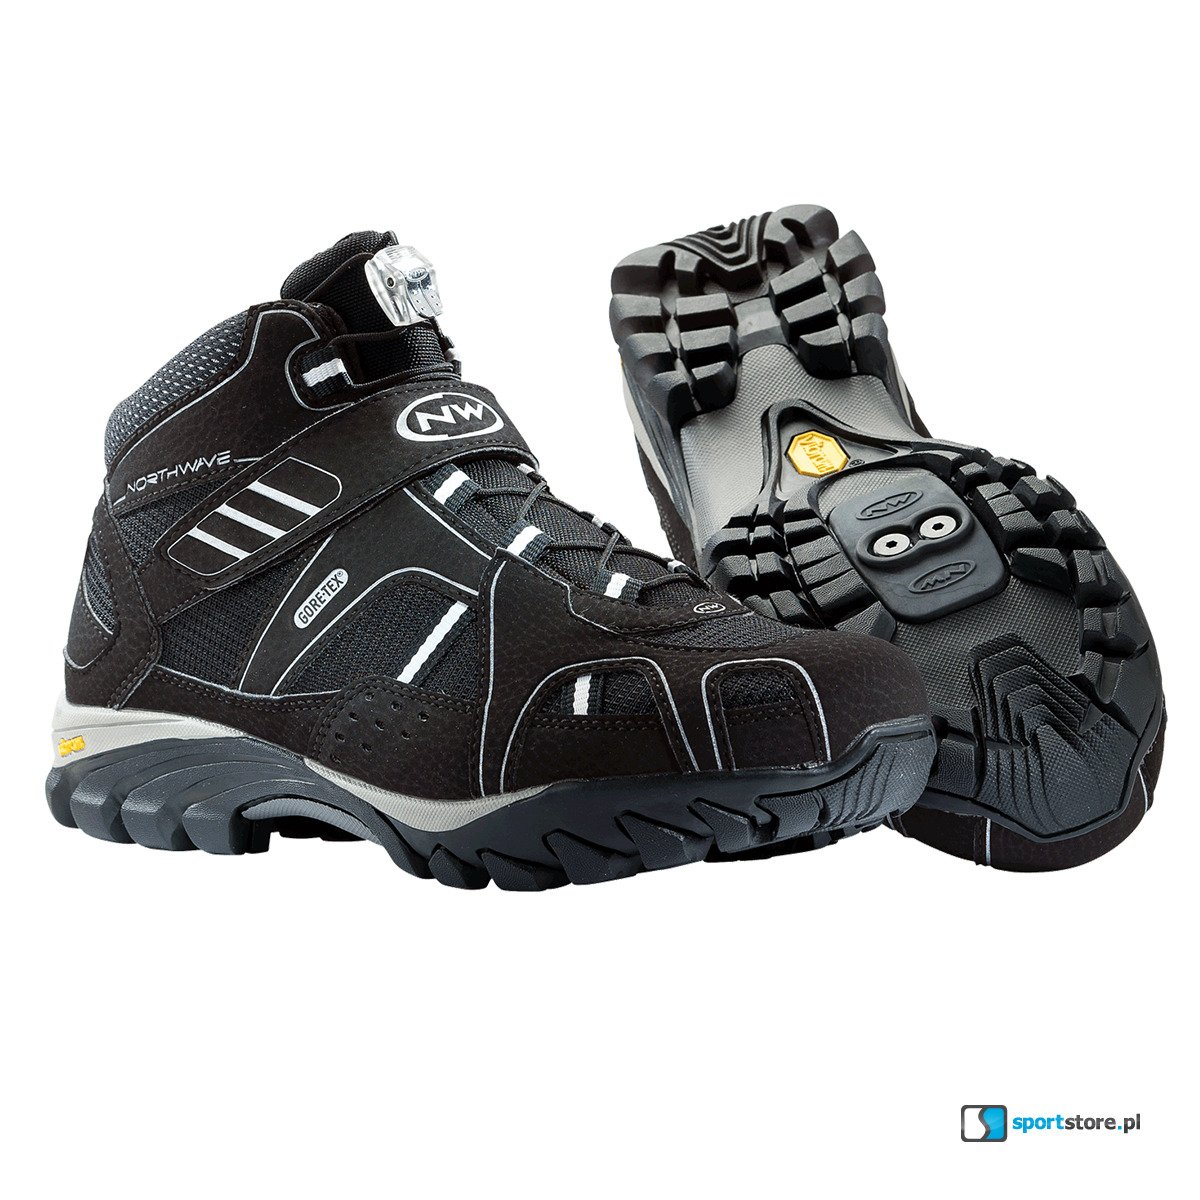 Large Cycling Shoes Size